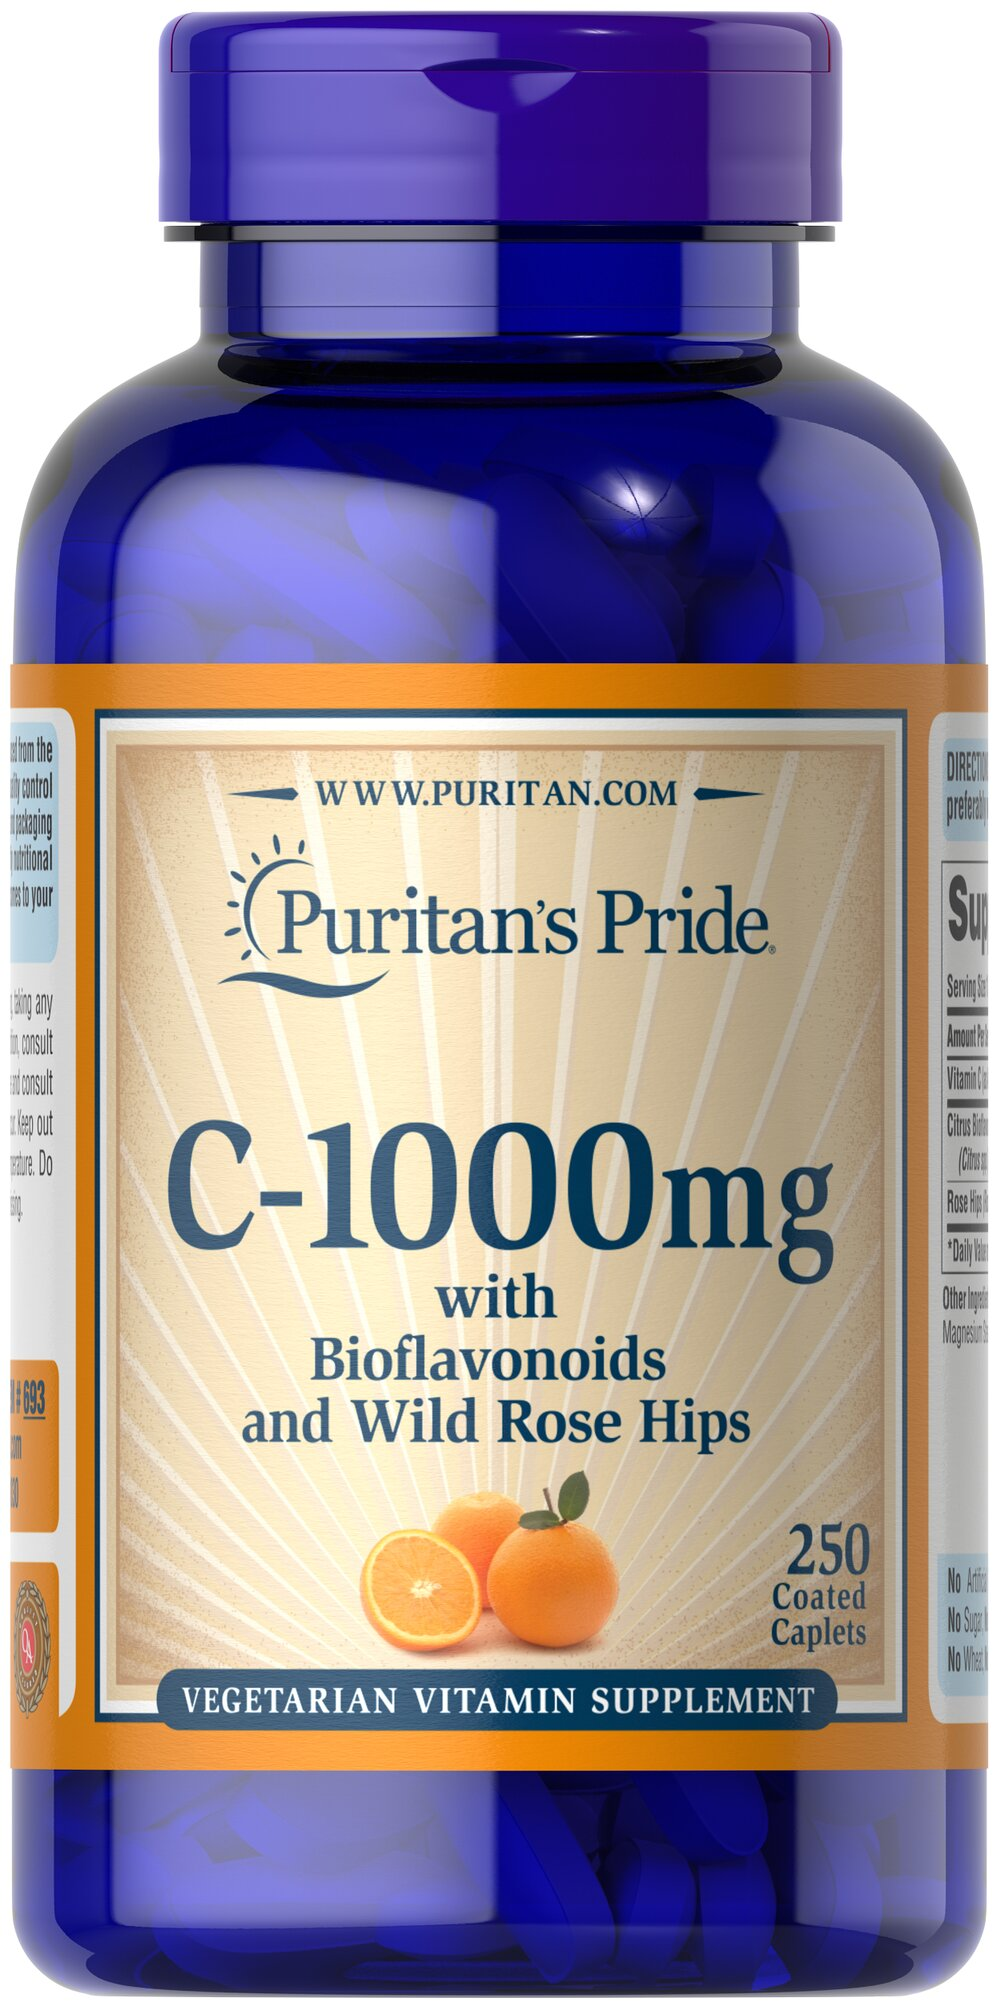 Vitamin C-1000 mg with Bioflavonoids & Rose Hips <p>Vitamin C  is essential to many functions in the body and is one of the leading vitamins for immune support and helps fight cell-damaging free radicals.**  Our product also includes Rose Hips, which help the body absorb and utilize Vitamin C.**</p><p>Offers superior antioxidant support.**</p><p>Supports healthy immune function and promotes well-being.**</p> 250 Caplets 1000 mg $22.99